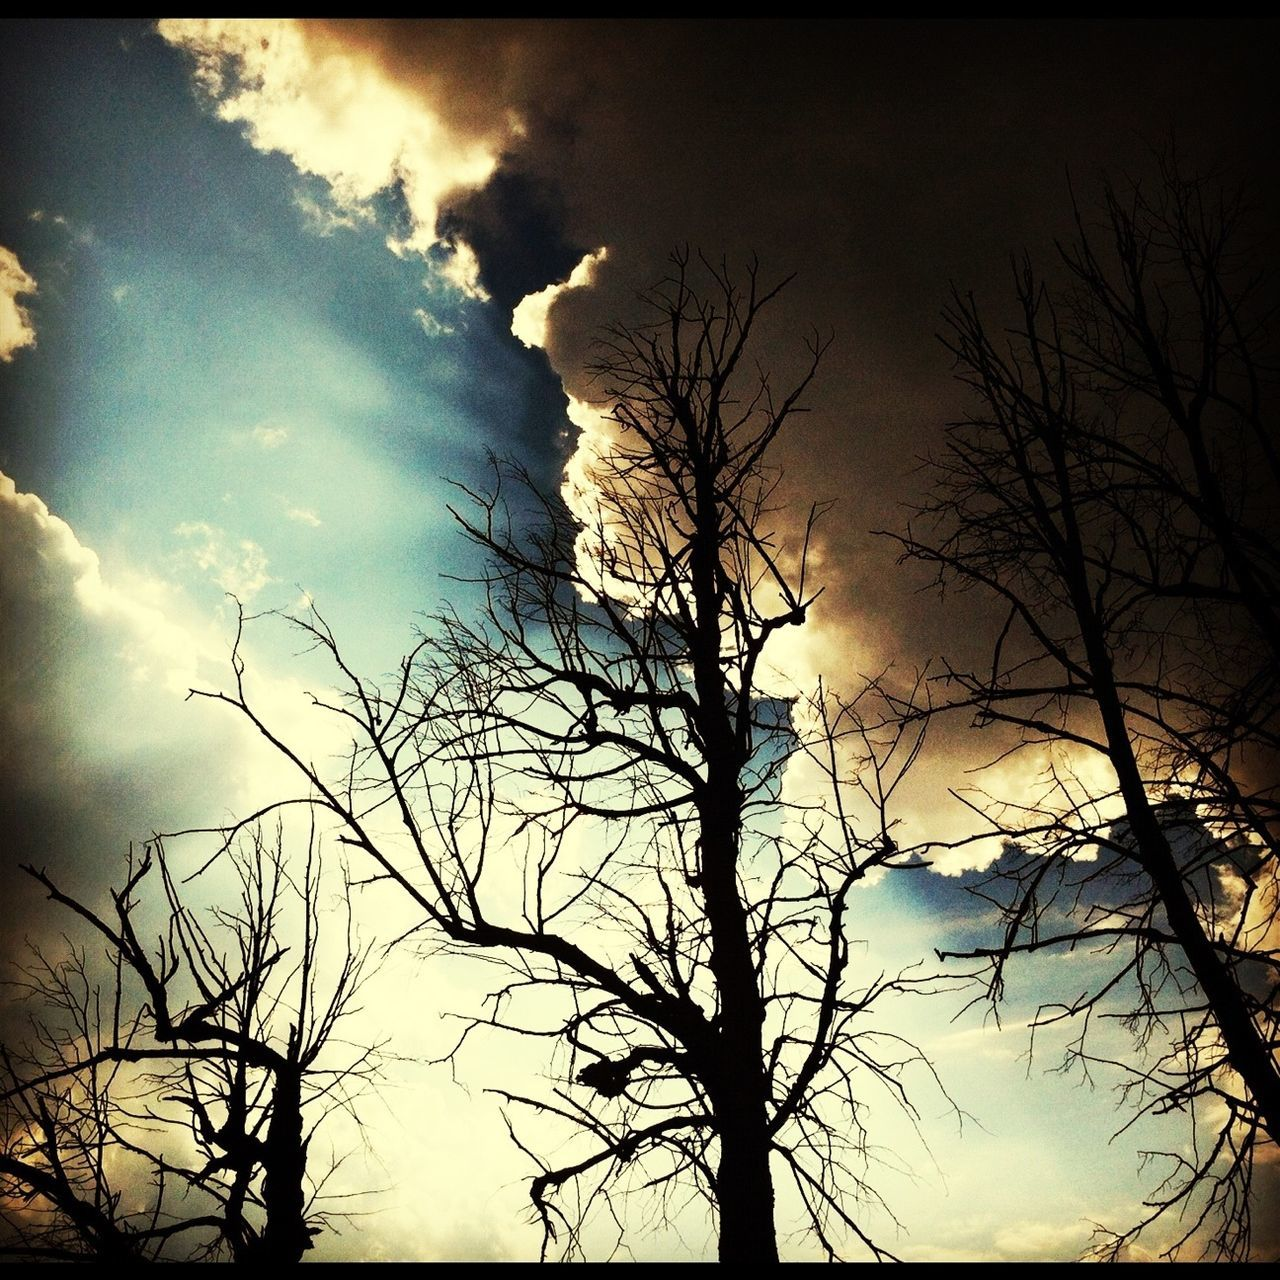 bare tree, tree, silhouette, nature, branch, sky, tranquility, beauty in nature, no people, tranquil scene, outdoors, scenics, low angle view, sunset, forest fire, global warming, day, vapor trail